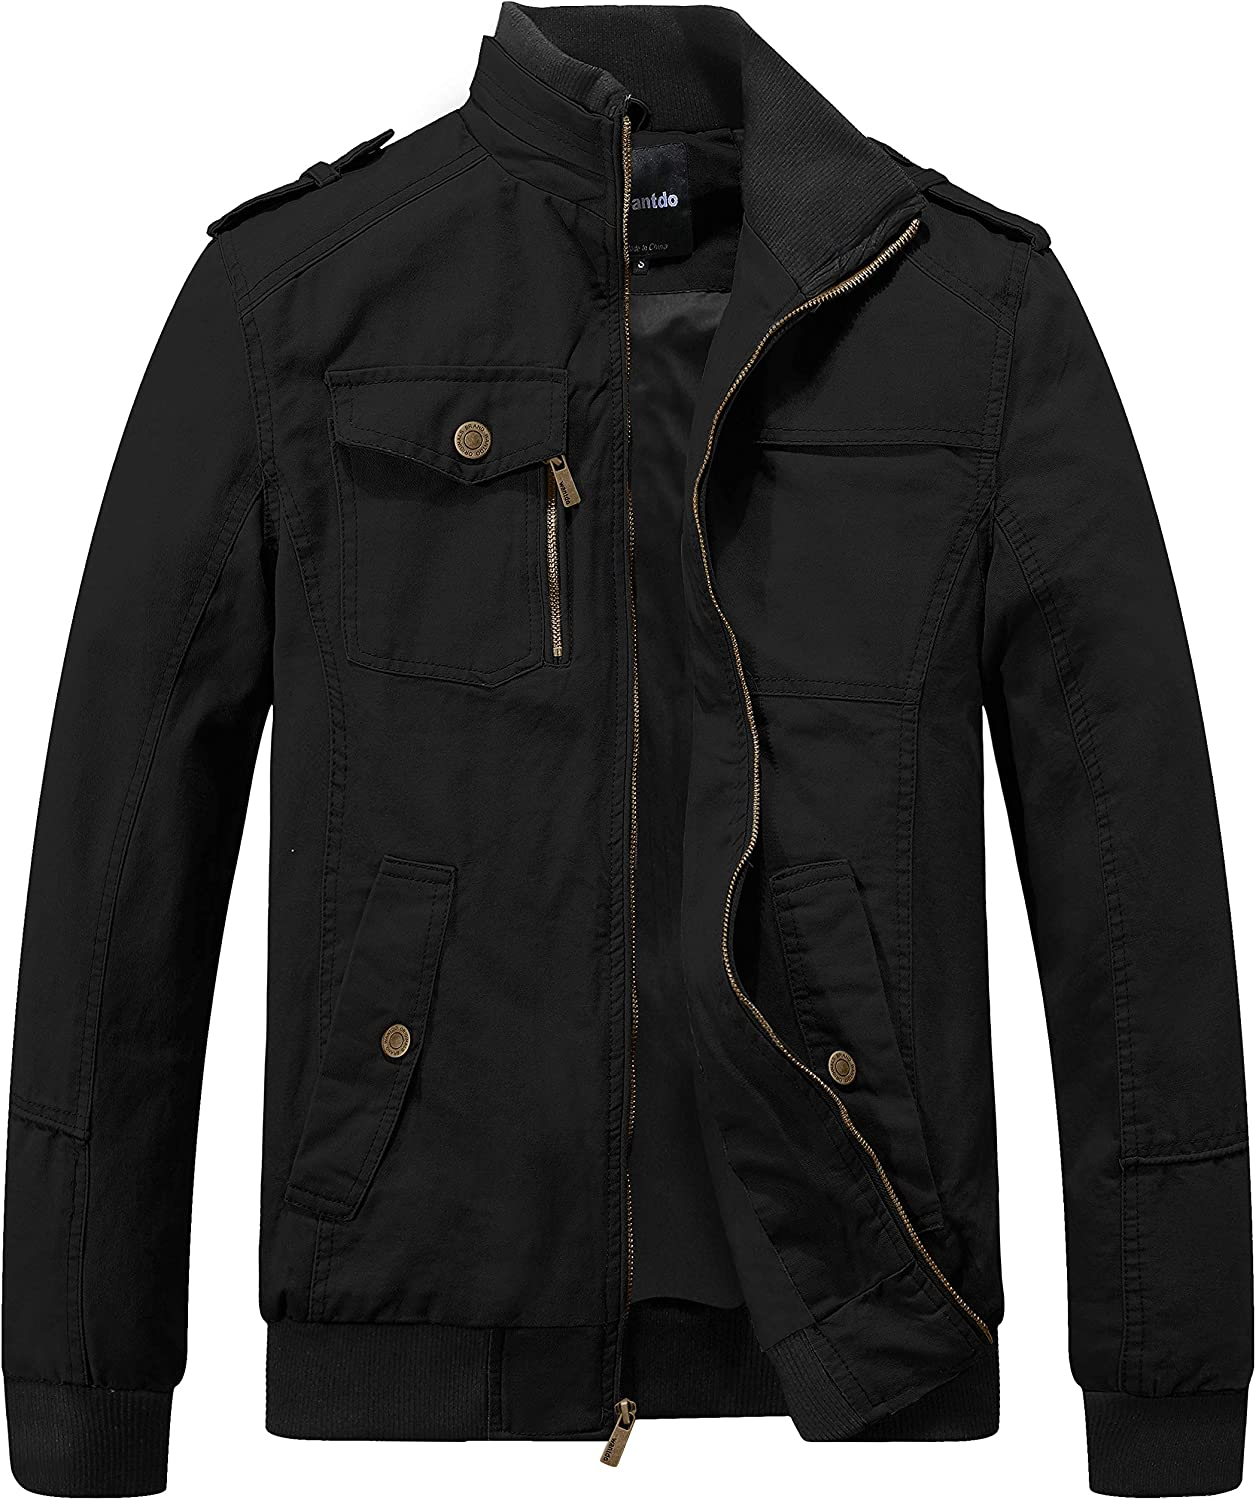 Wantdo Men's Military Cotton Lightweight Casual Stand Collar Windbreaker Jacket: Clothing